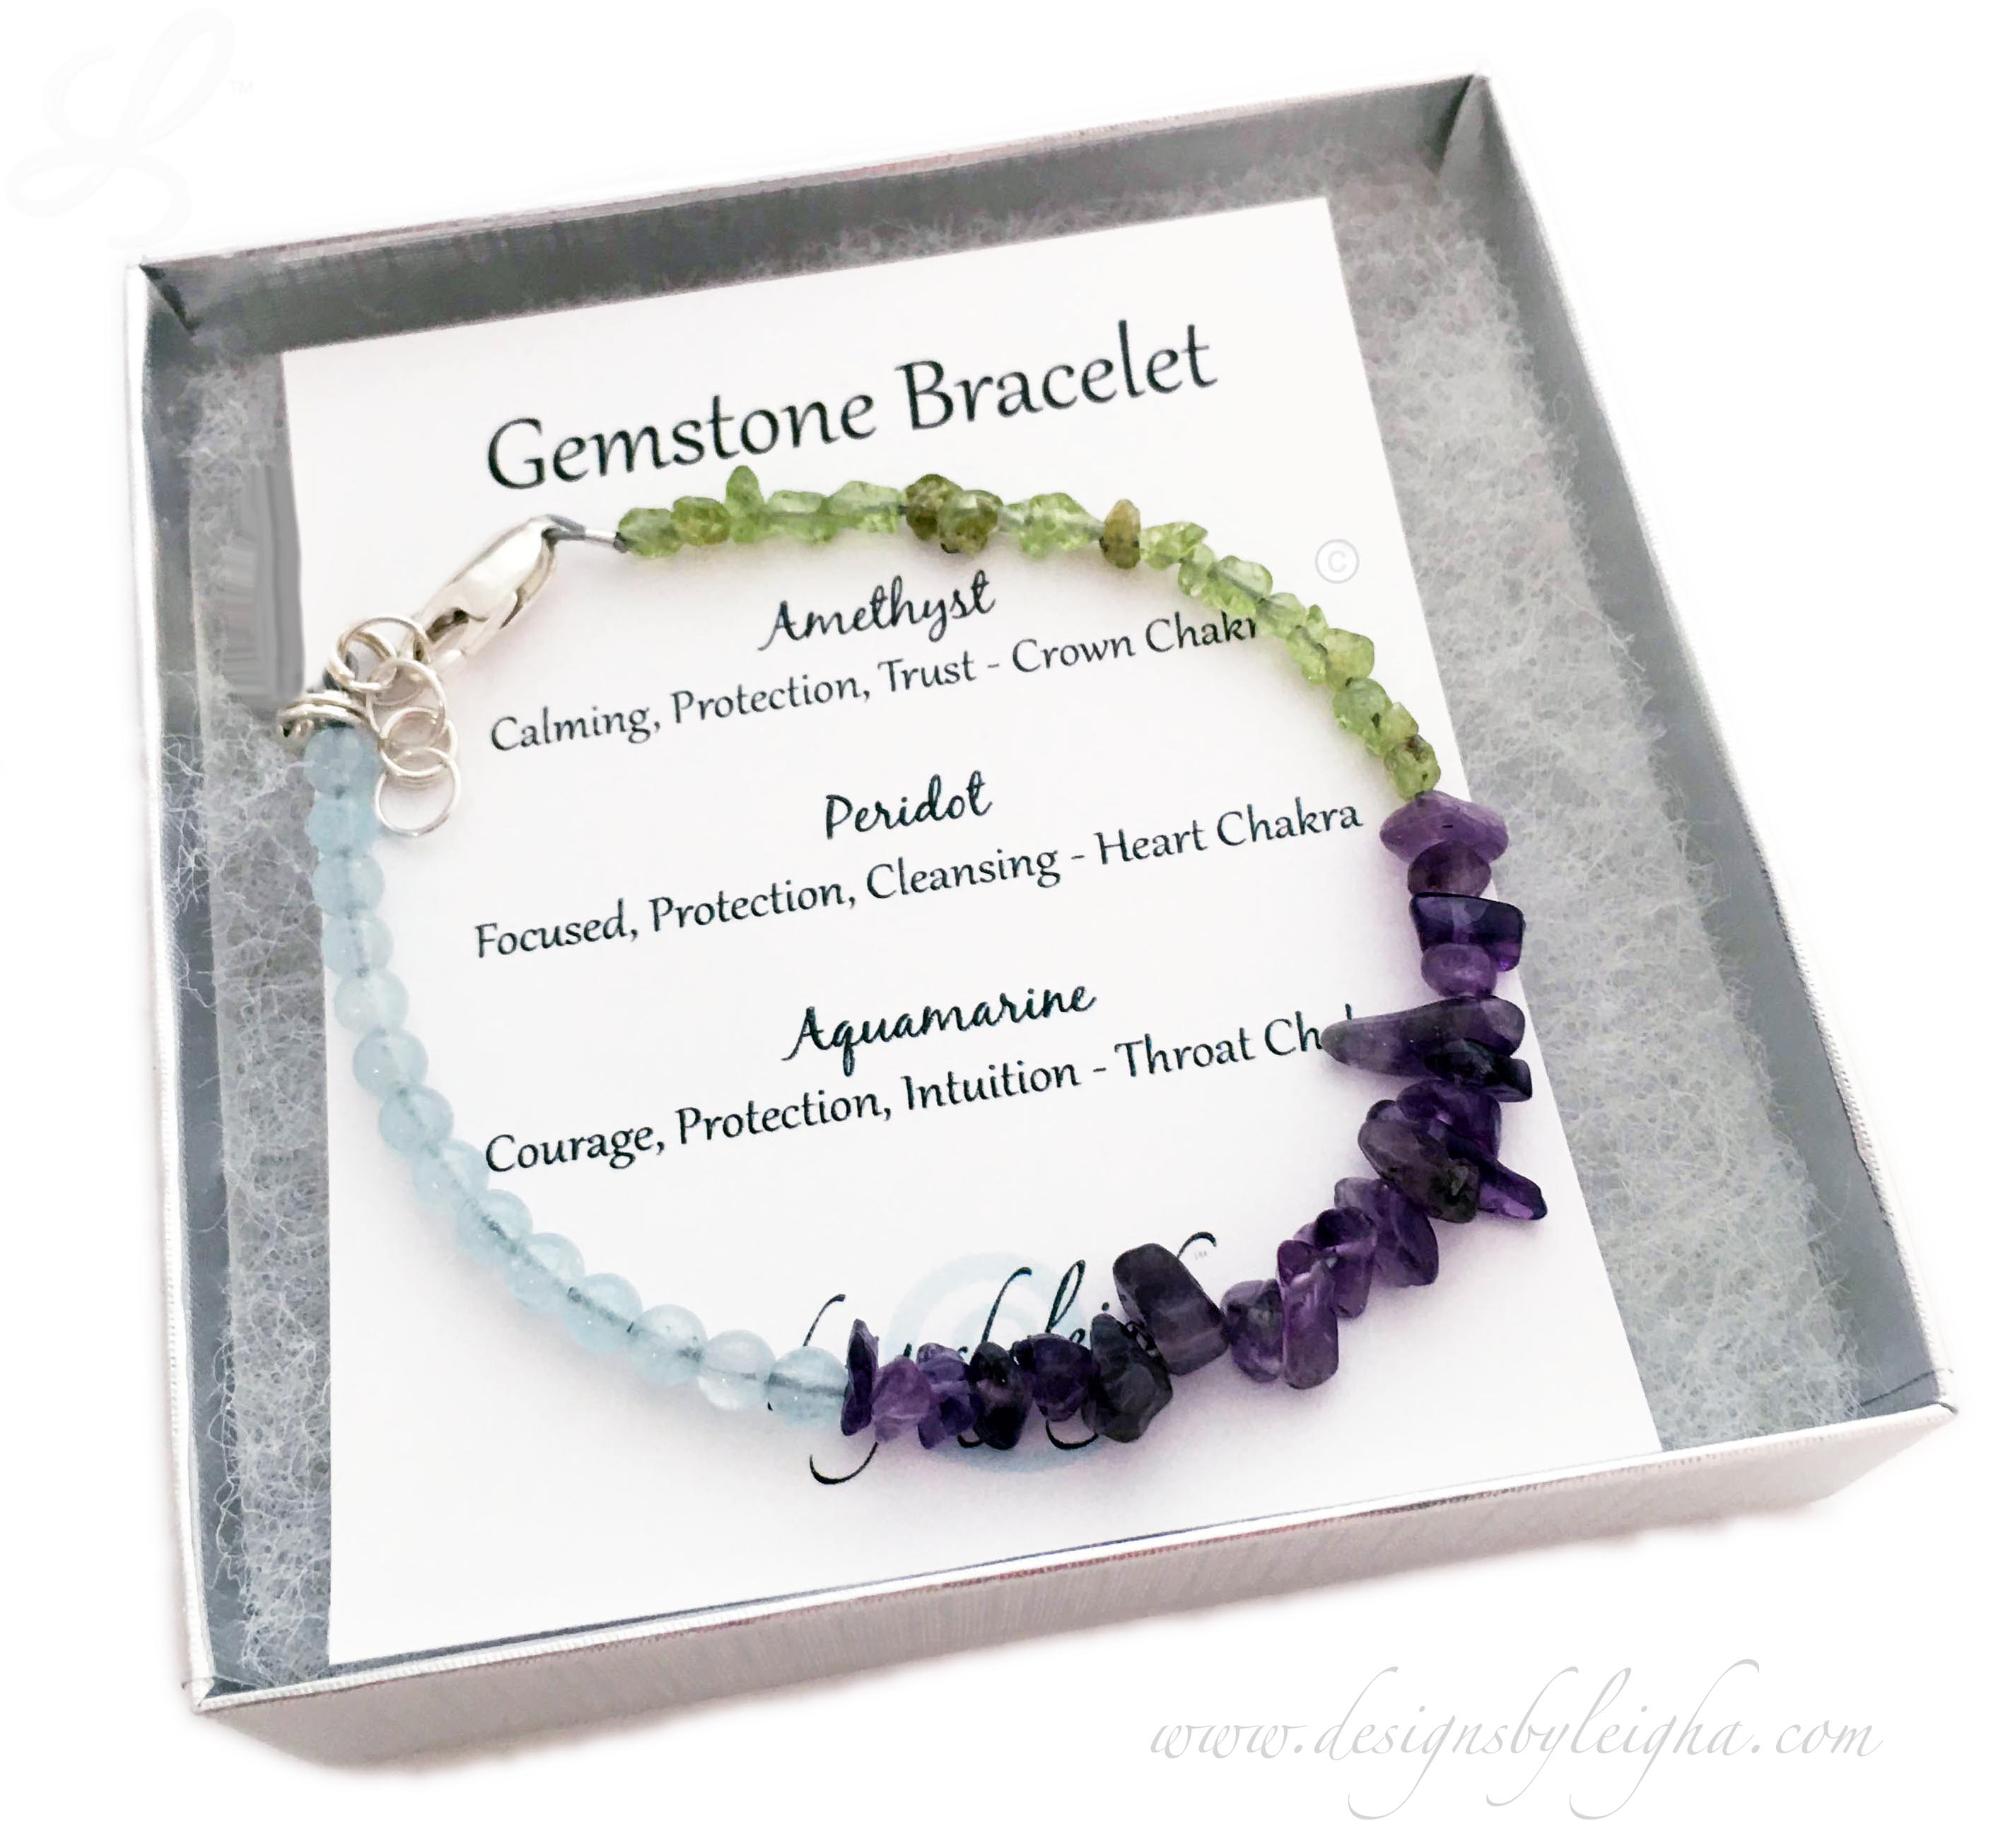 DBL-BB-19  This Electic Birthstone Bracelet comes with a card that talks about each of the gemstones. This Amethyst, Aquamarine and Peridot bracelet is shown with a Lobster Claw Clasp with an Extension.